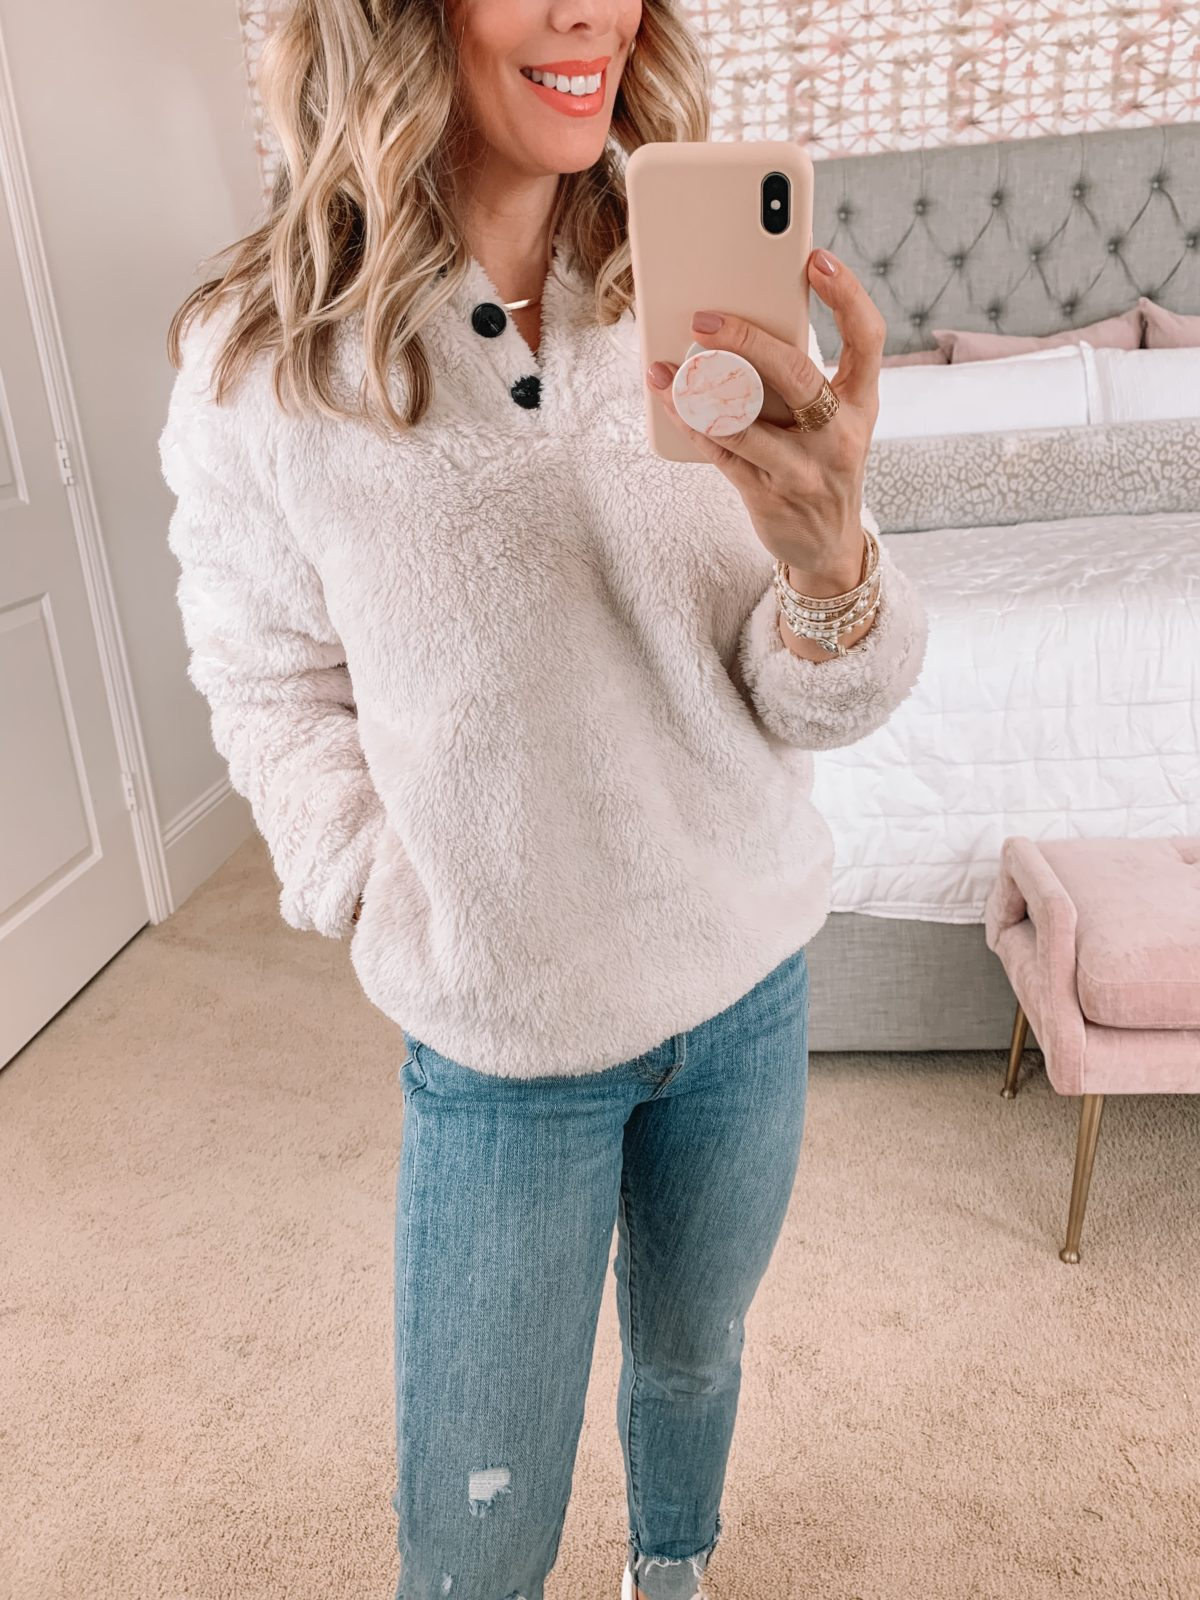 Amazon Fashion Faves, Pullover, Jeans, Sneakers